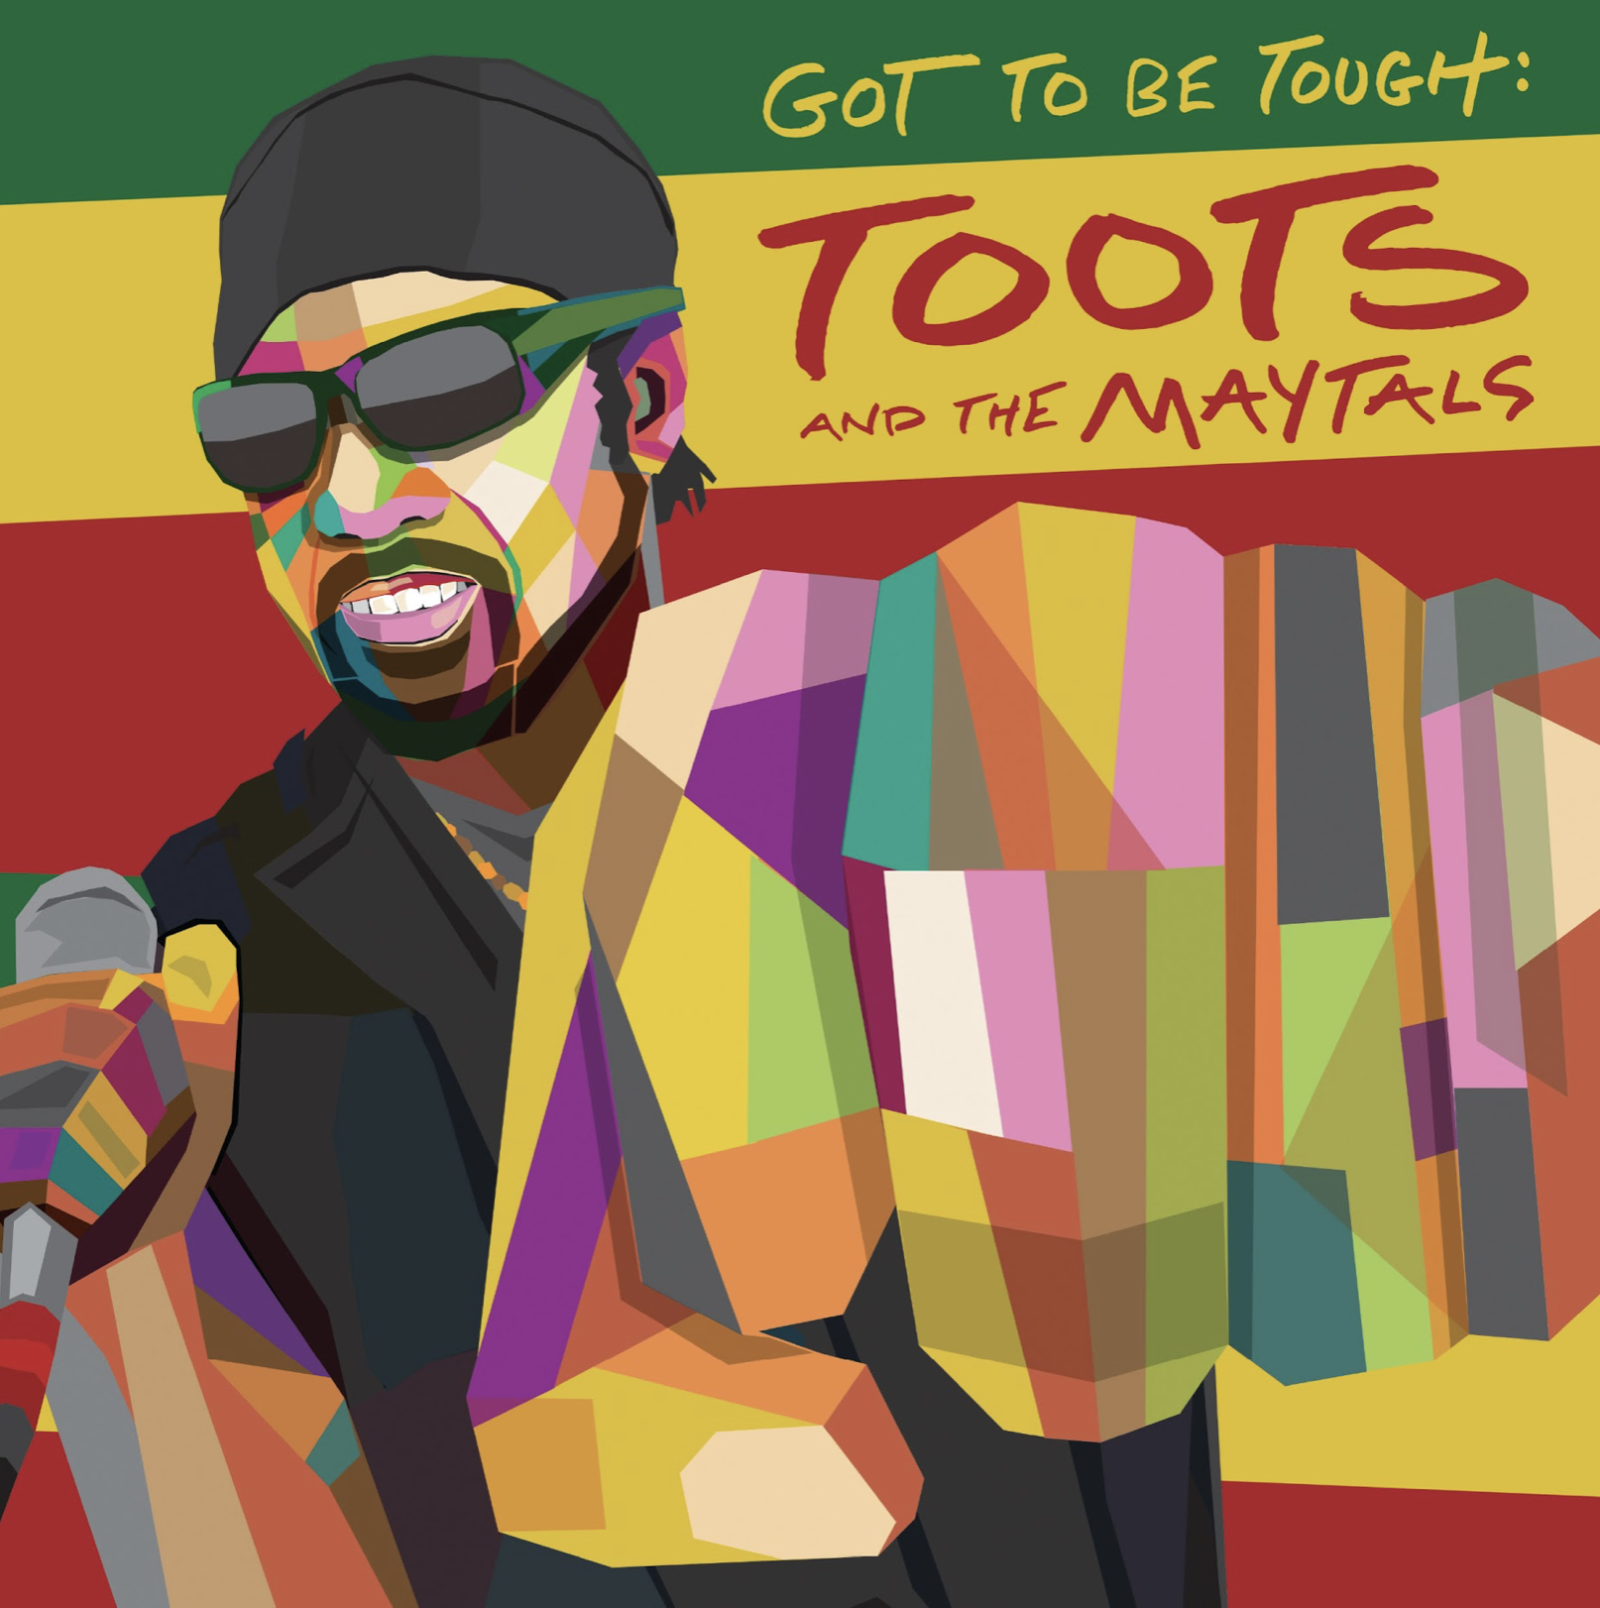 toots and the maytals got to be tough